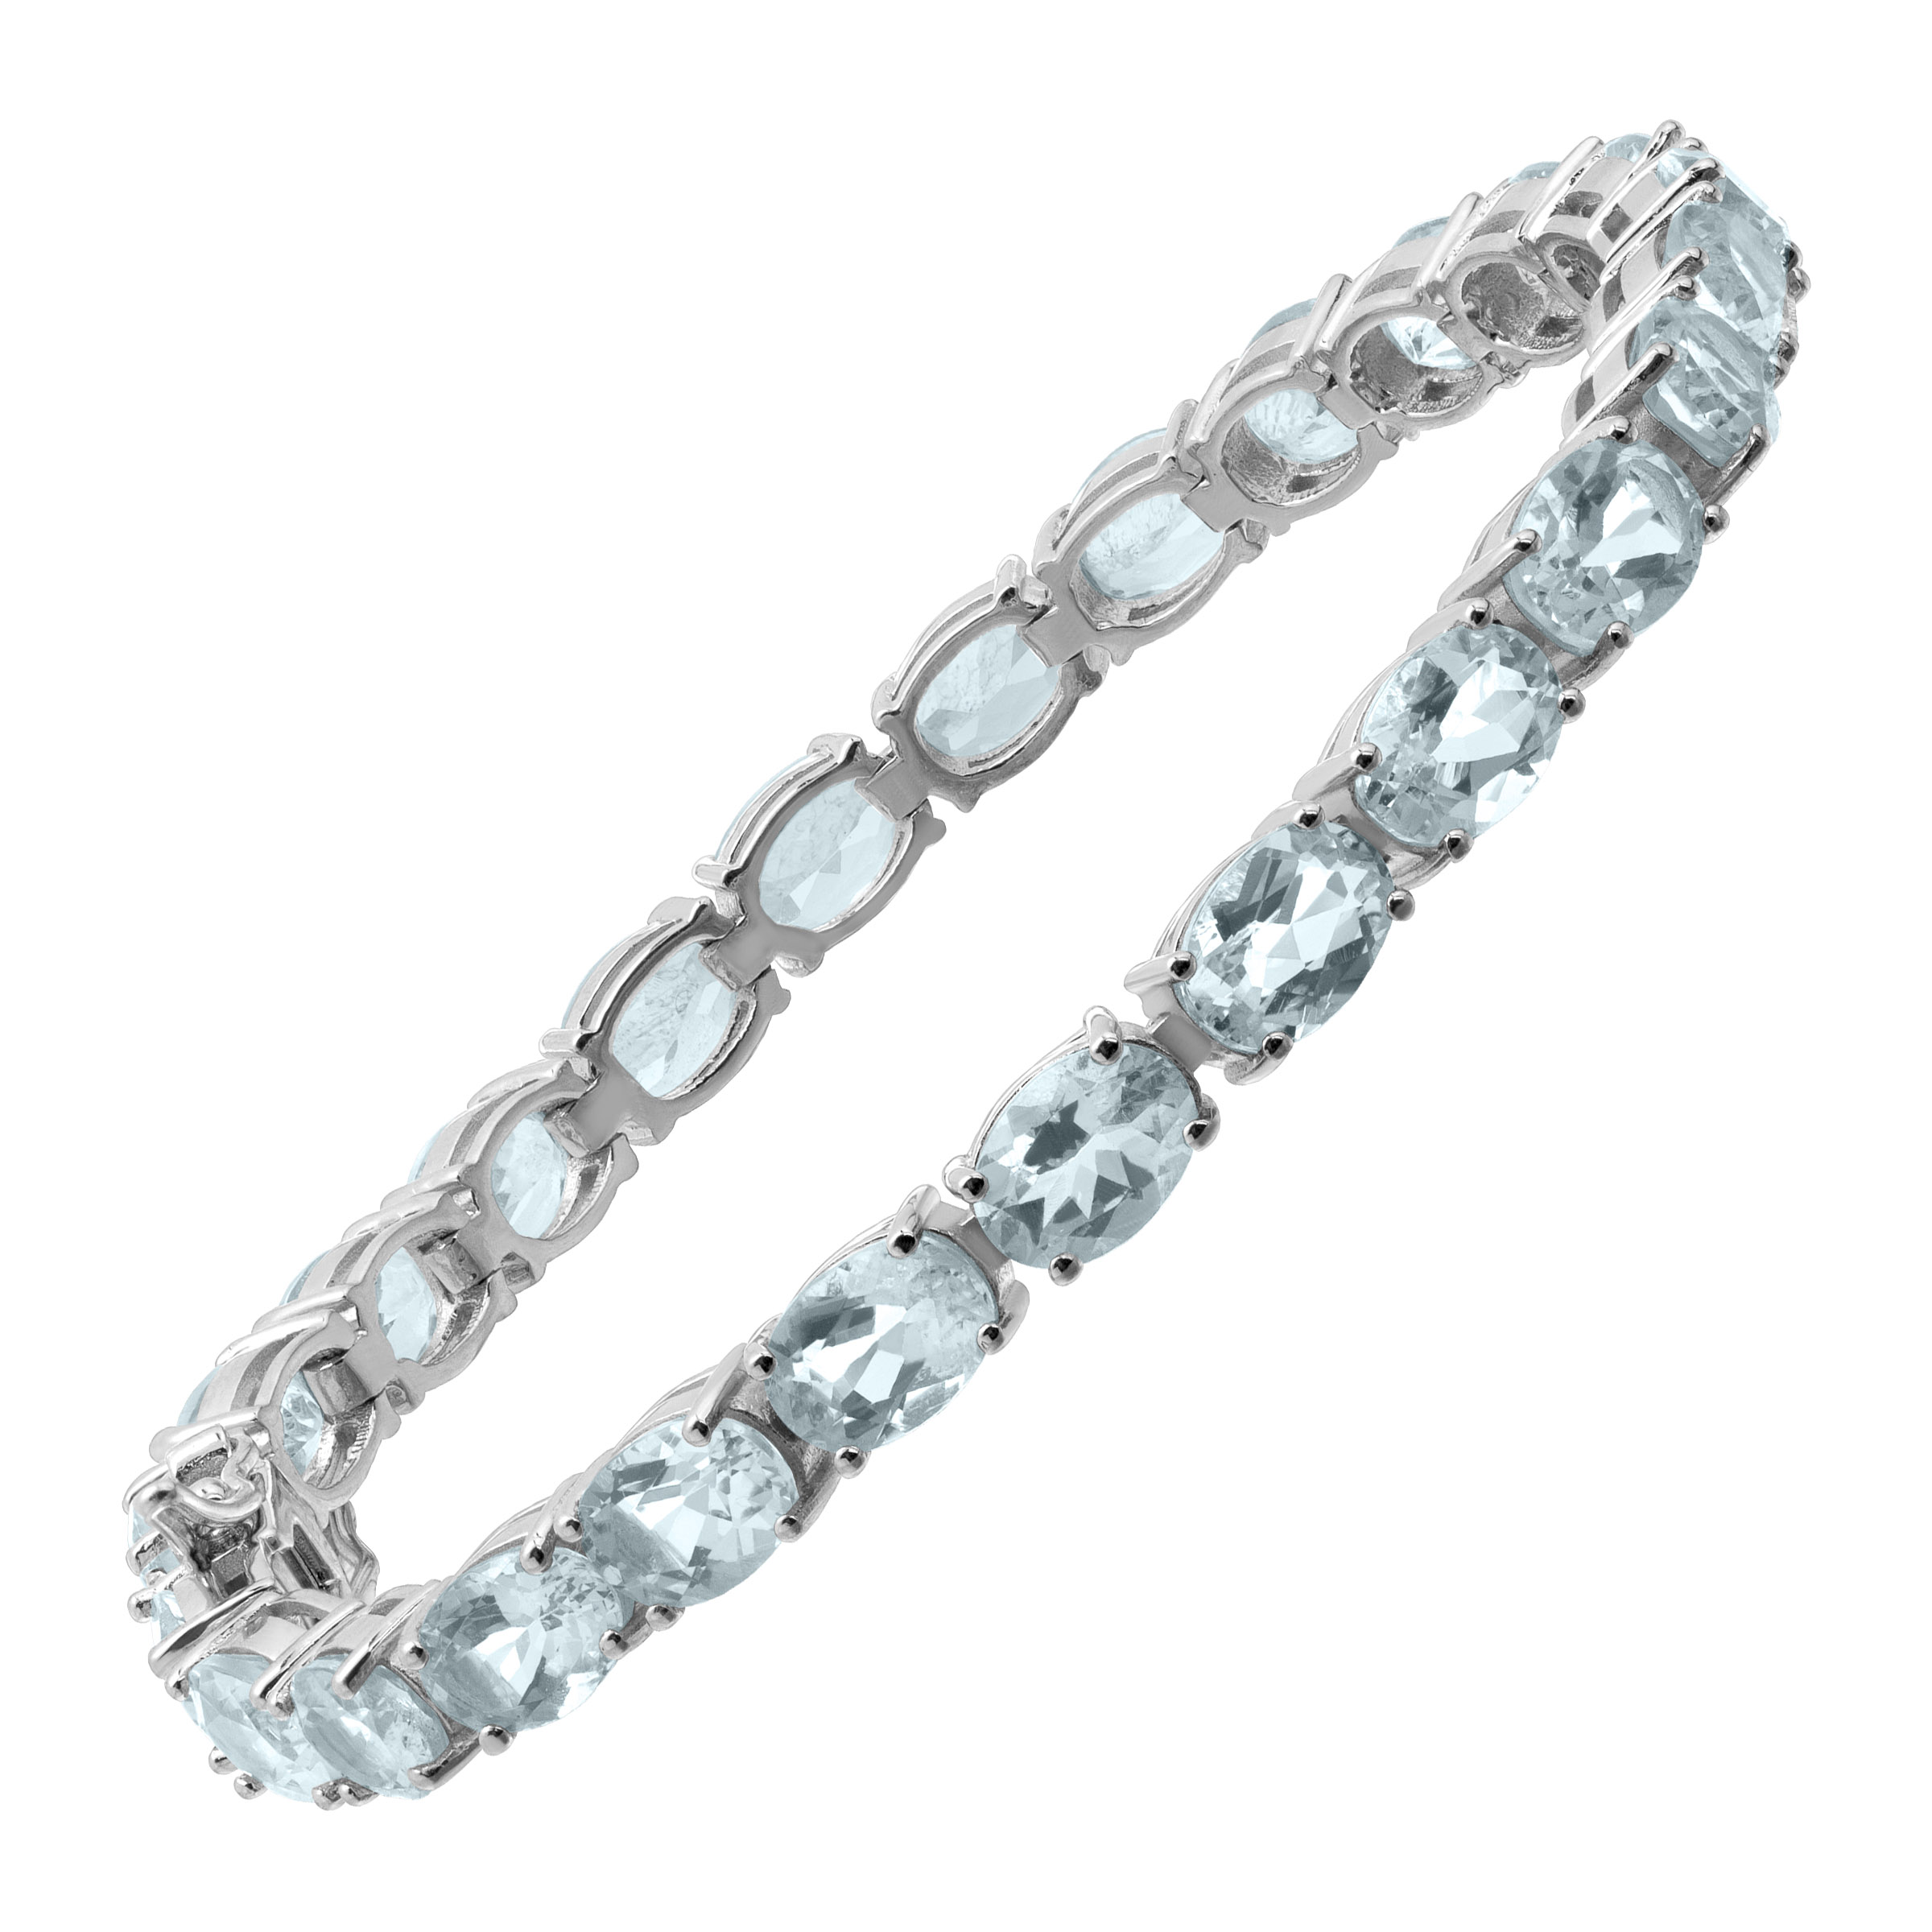 24 ct Natural Aquamarine Tennis Bracelet in Sterling Silver by Richline Group